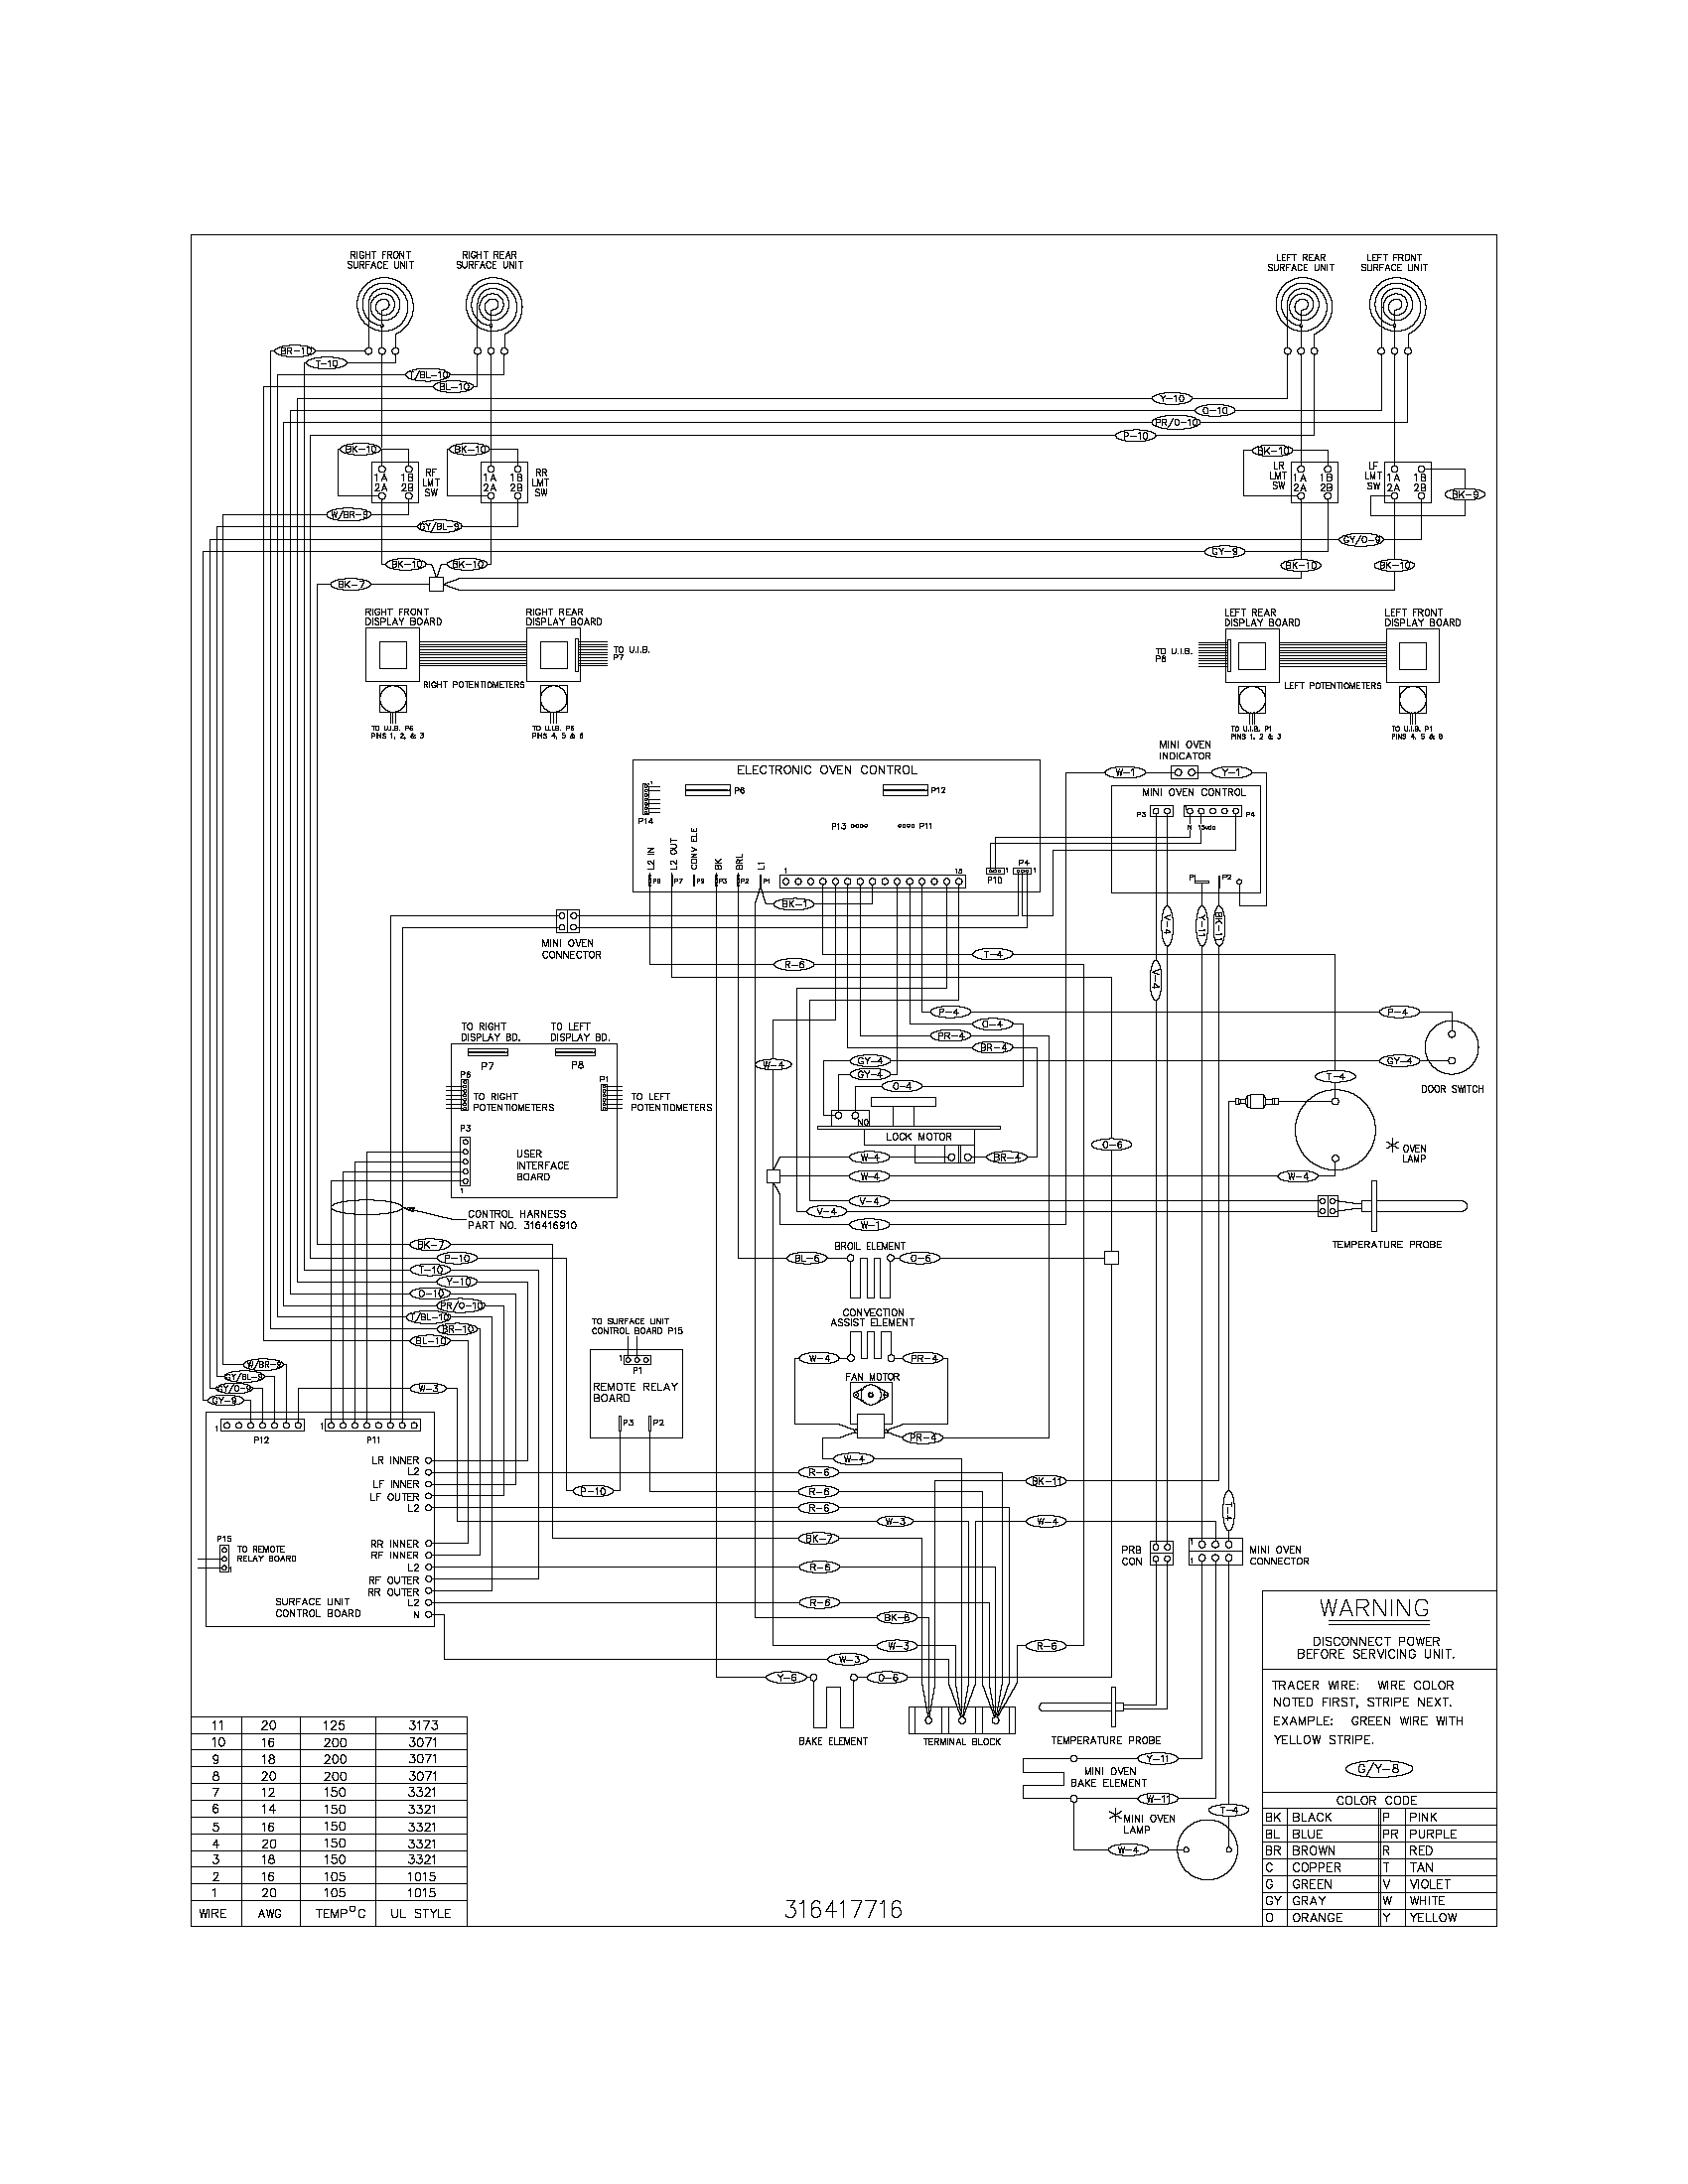 wiring diagram parts odes wiring diagram e z go wiring diagram \u2022 wiring diagrams j wiring diagram for electric fireplace at crackthecode.co